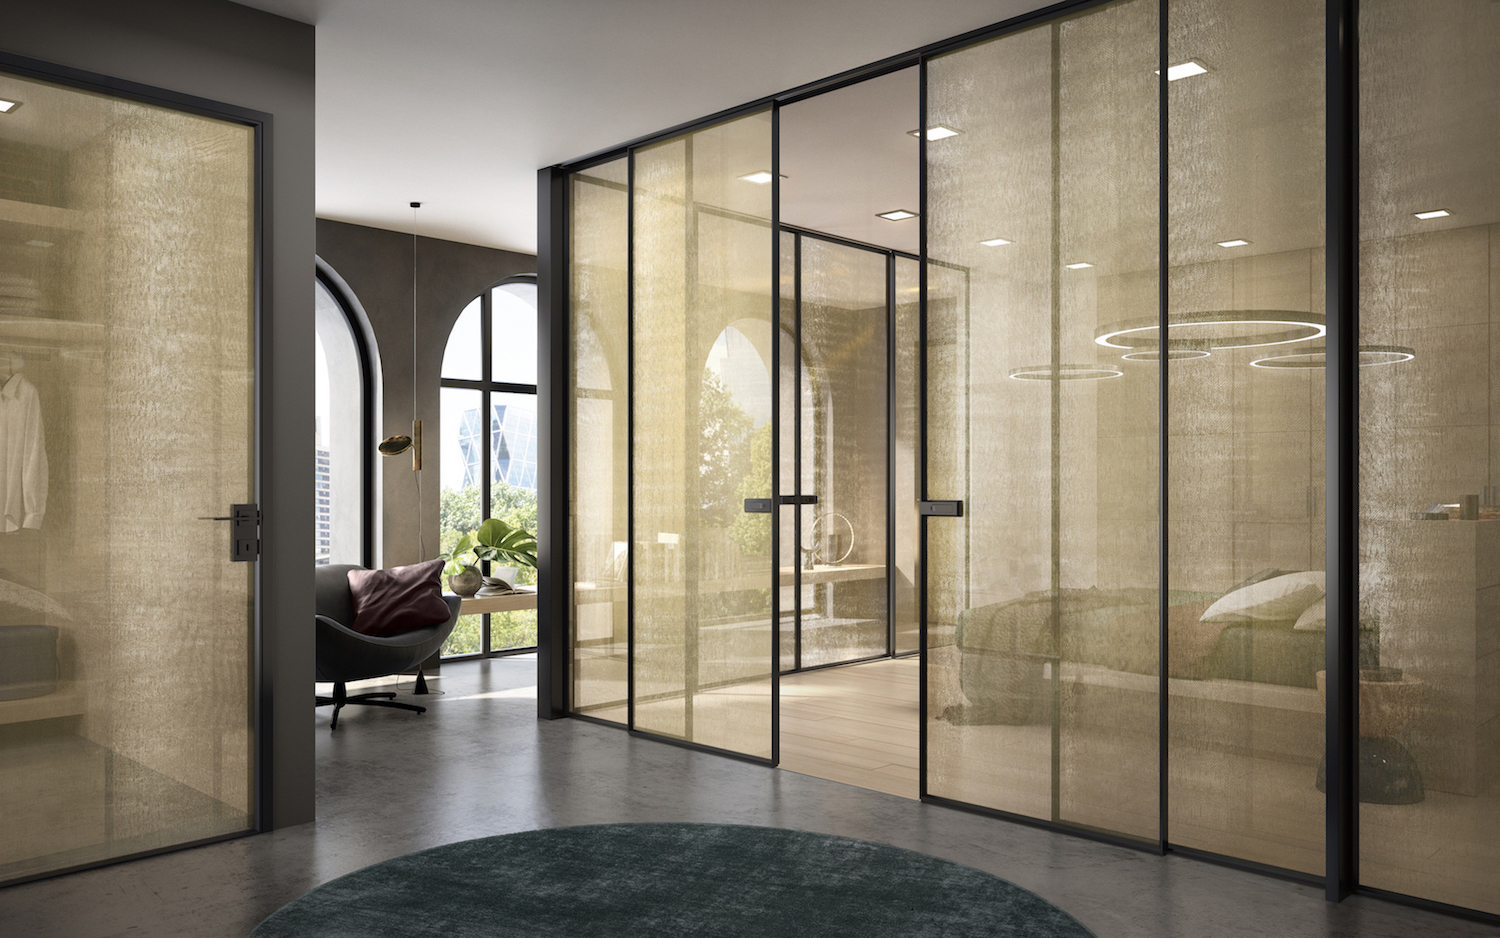 category hawa gp door sku hardware top ca commercial r junior en fixed for system doors residential space hung with sliding interior glass systems